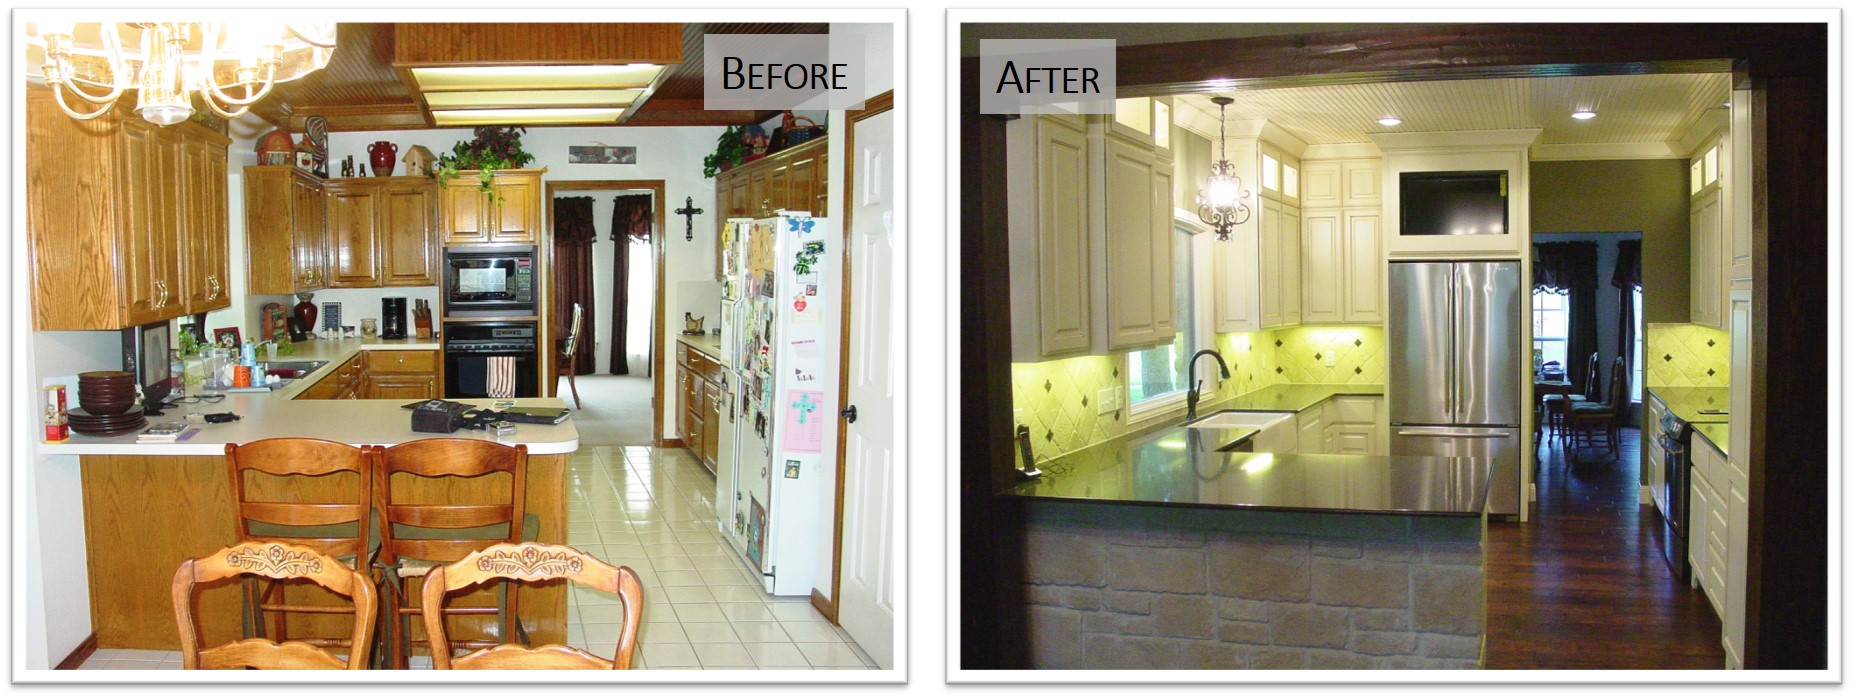 13205 CH, Kitchen2, Before and After, Bear Creek Homes.jpg